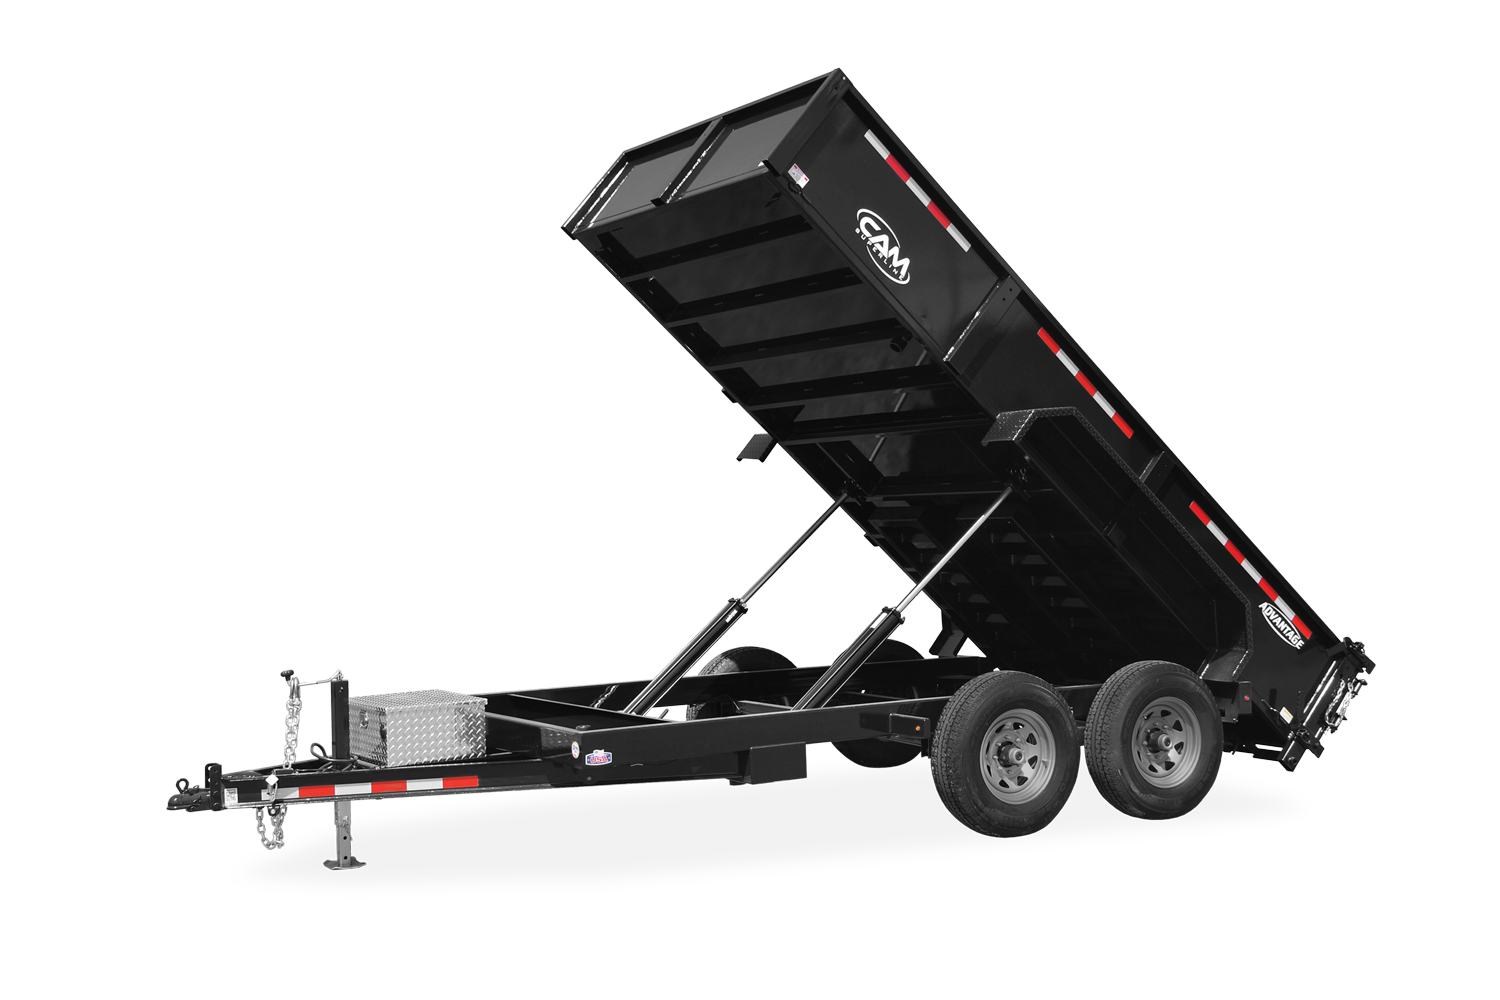 "2021 Cam Superline 6 Ton Advantage 81"" Wide x 12' Long HD Low Profile Dump Trailer"